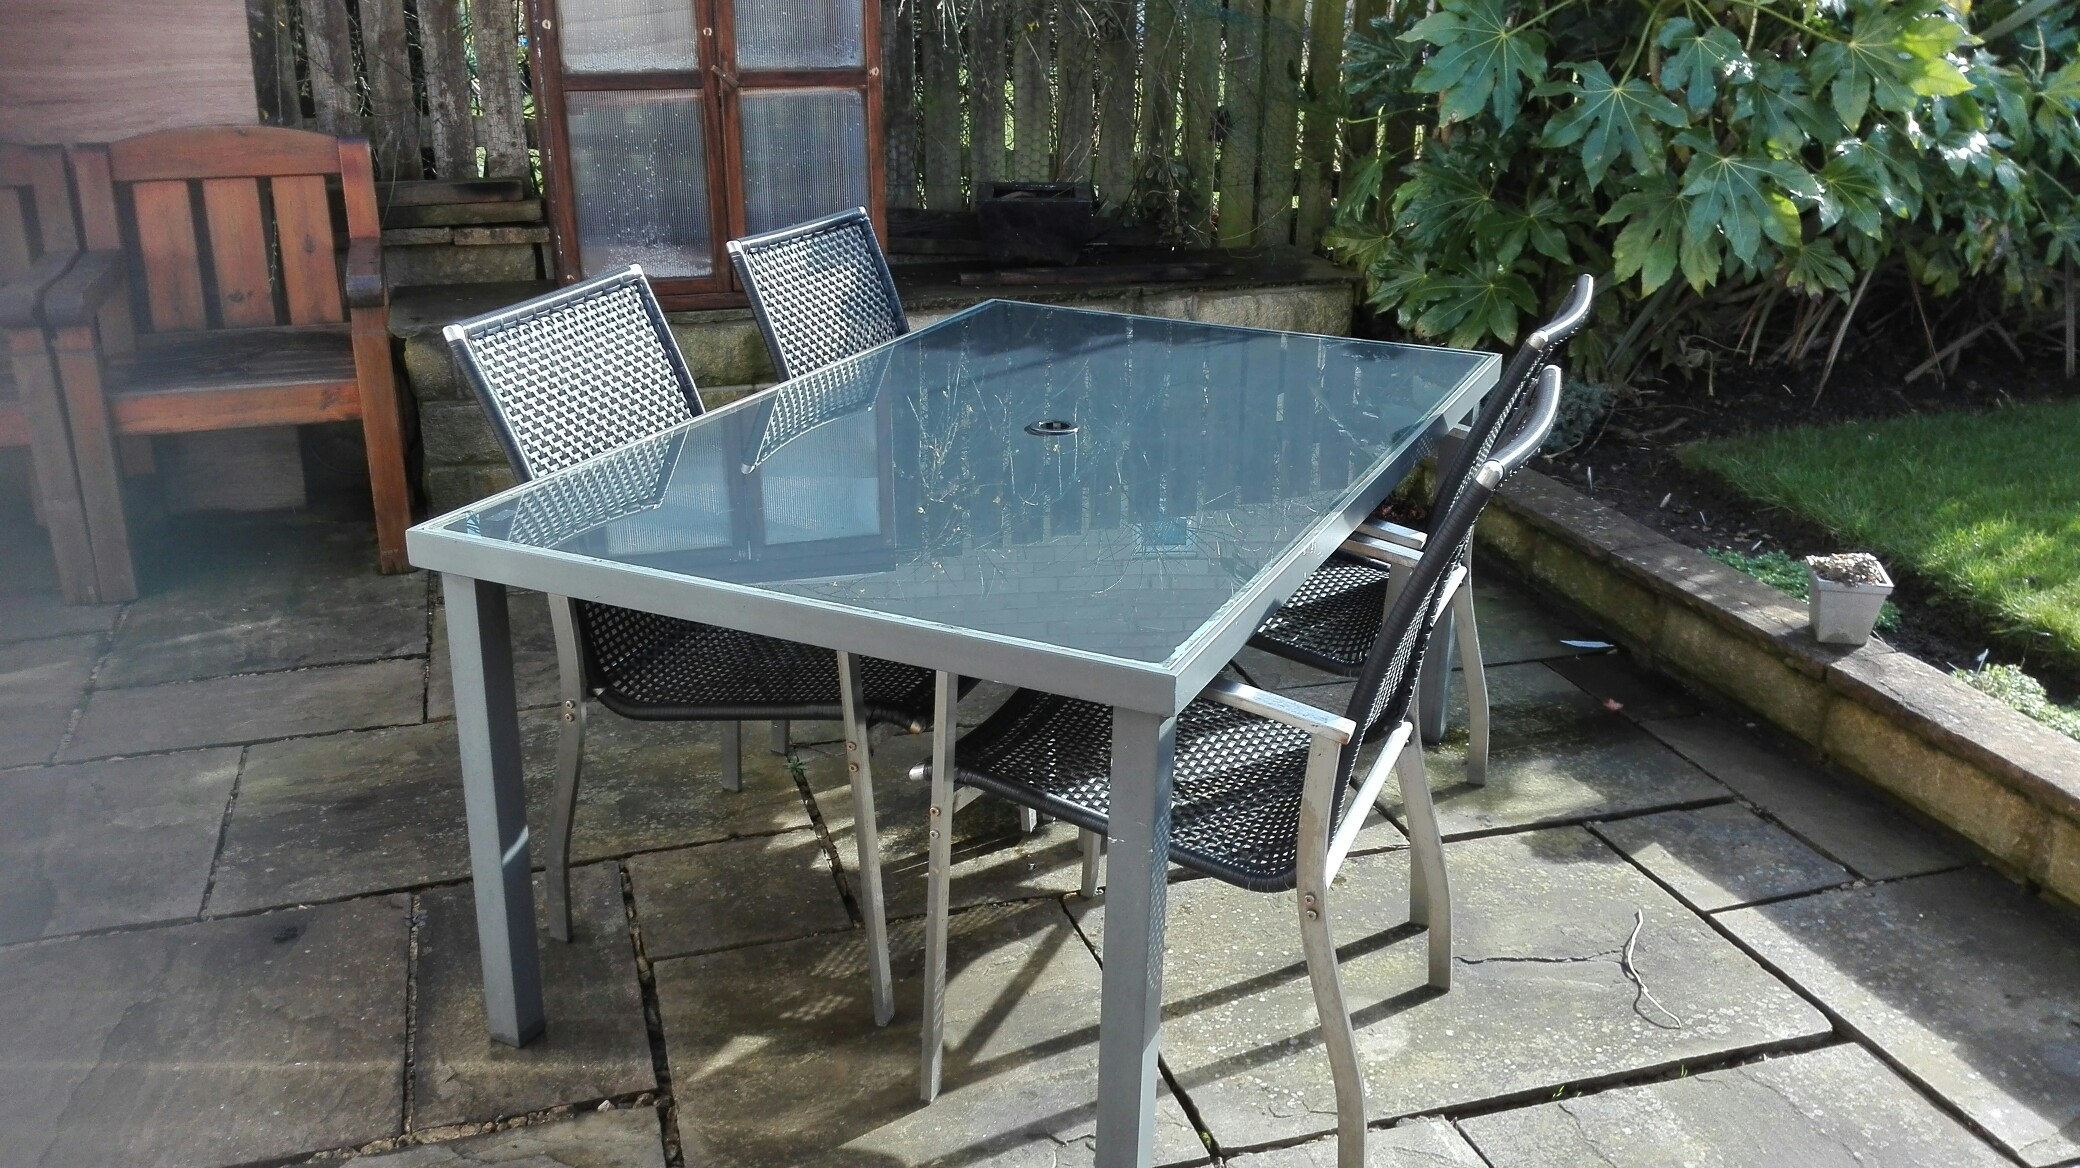 Garden Furniture Glasgow ikea garden furniture glasgow - container gardening ideas